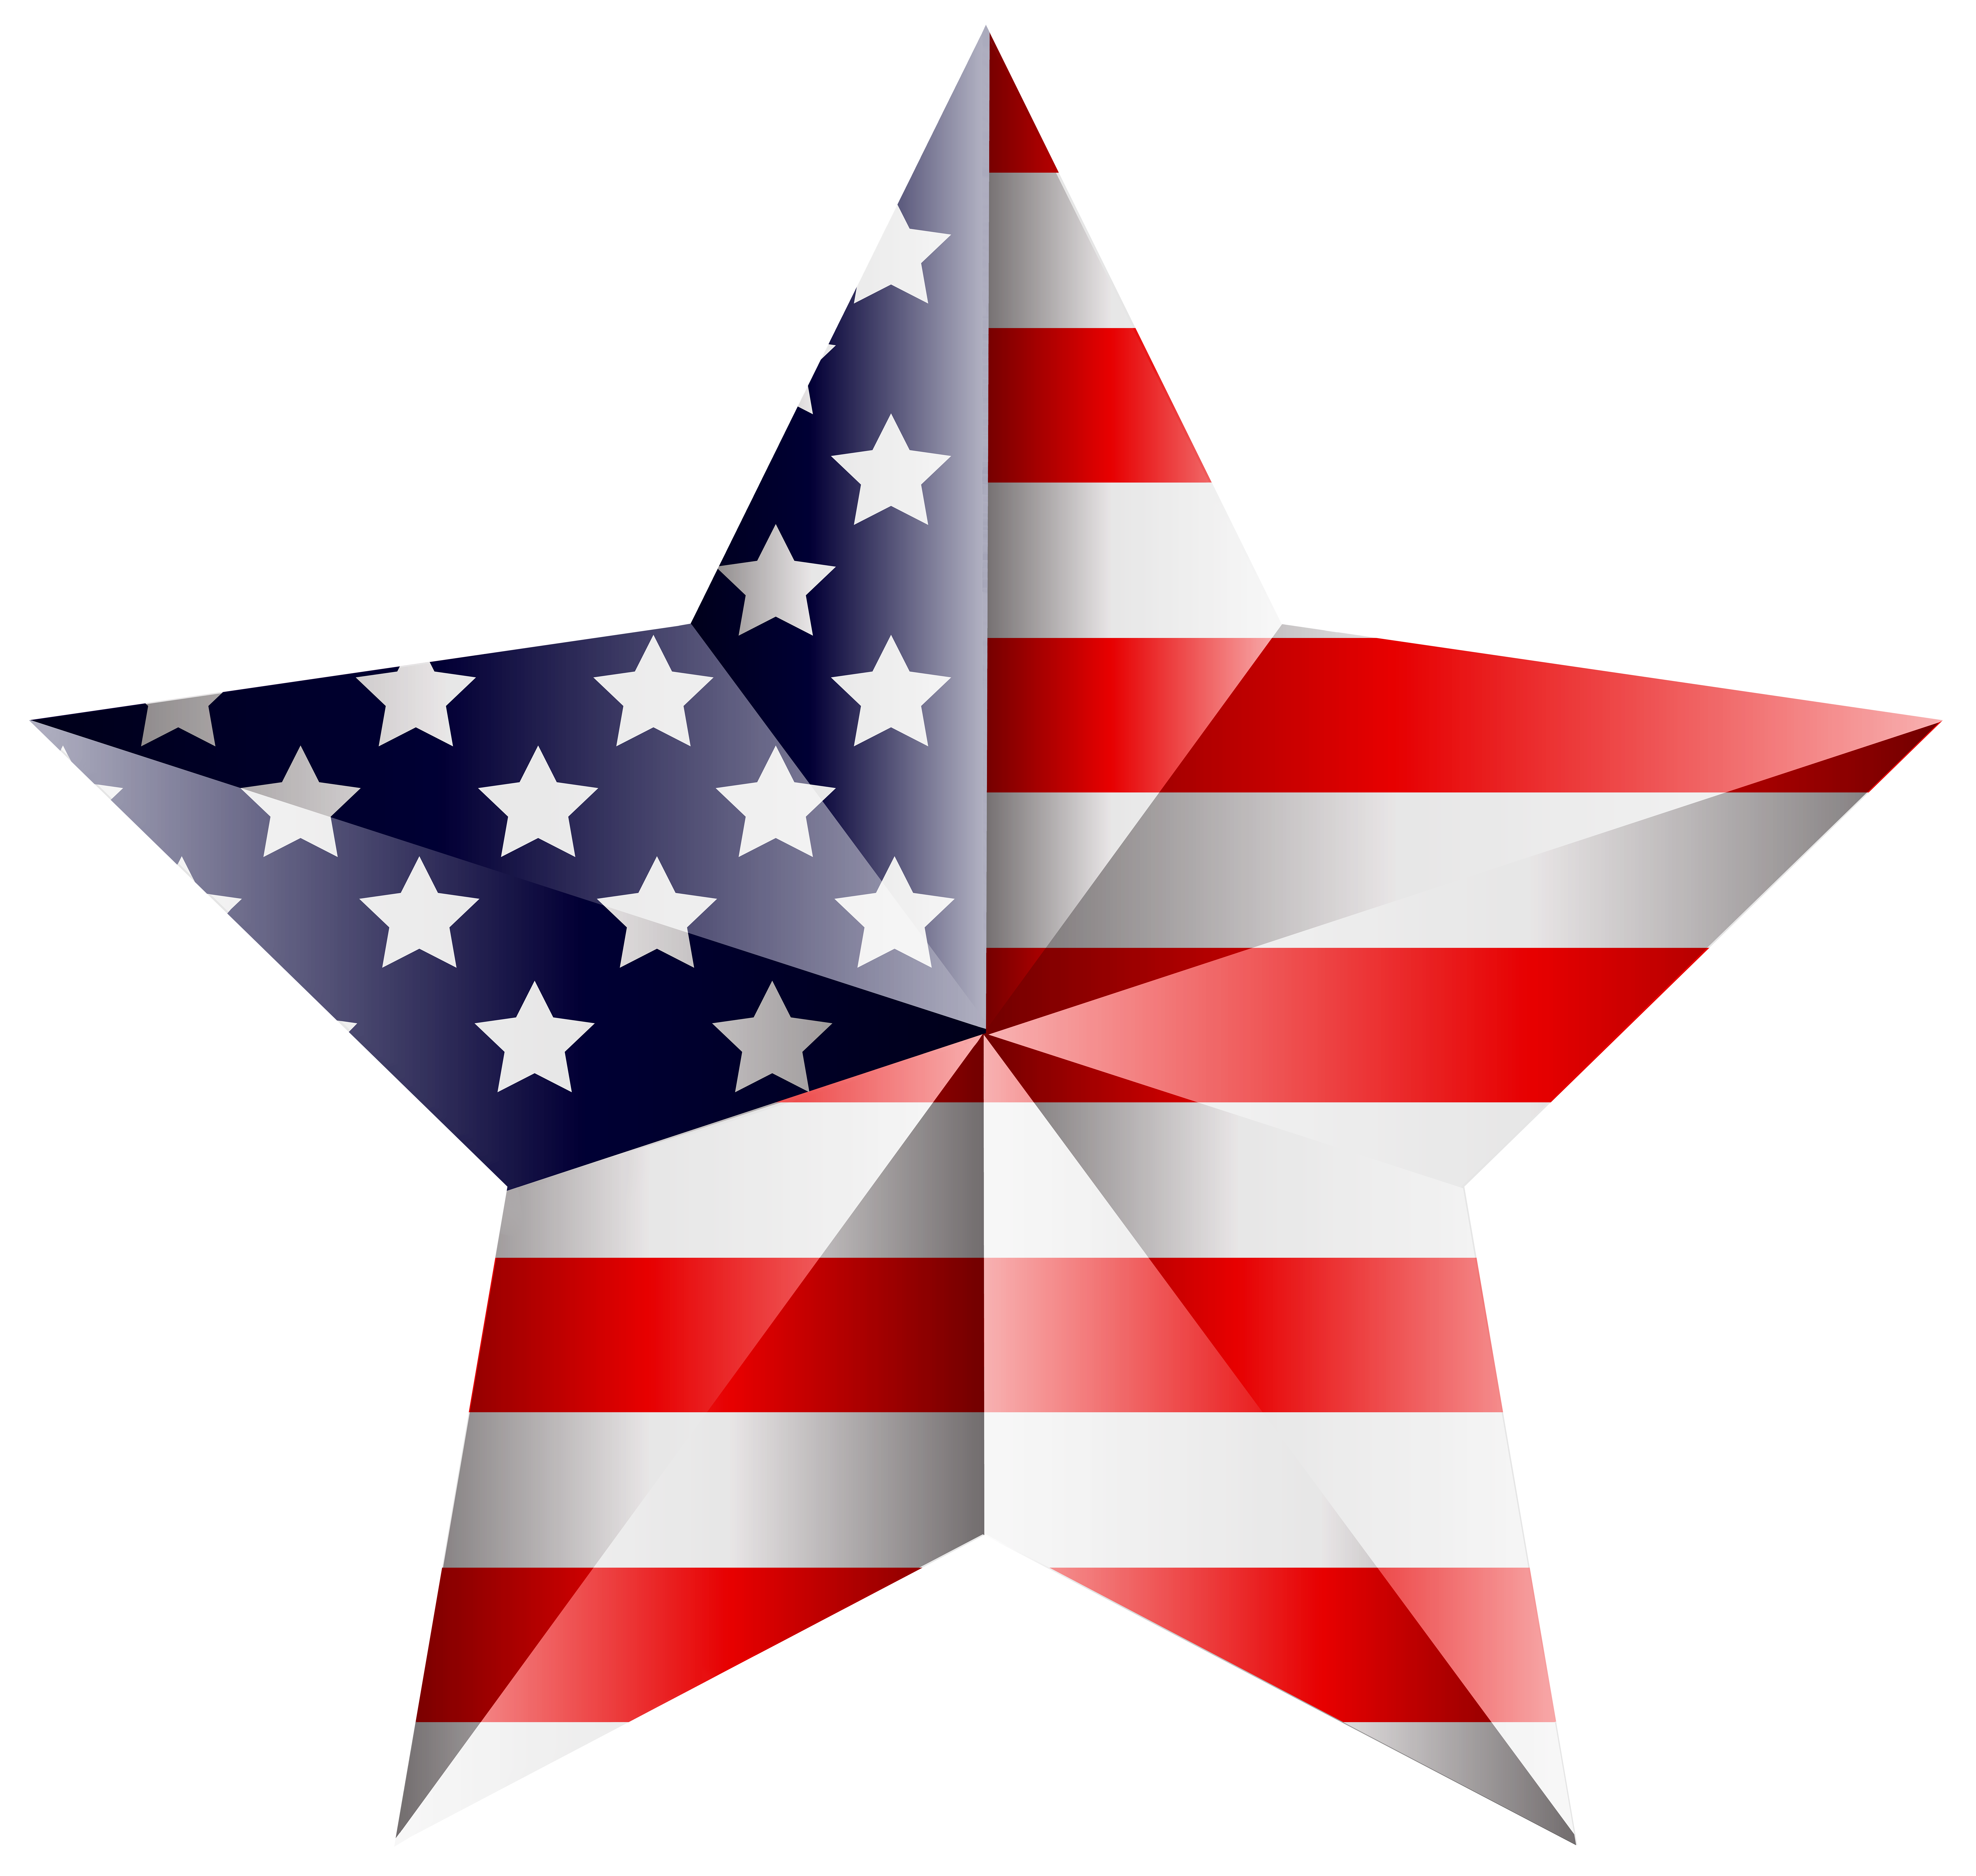 Free Stars And Stripes Png, Download Free Clip Art, Free.